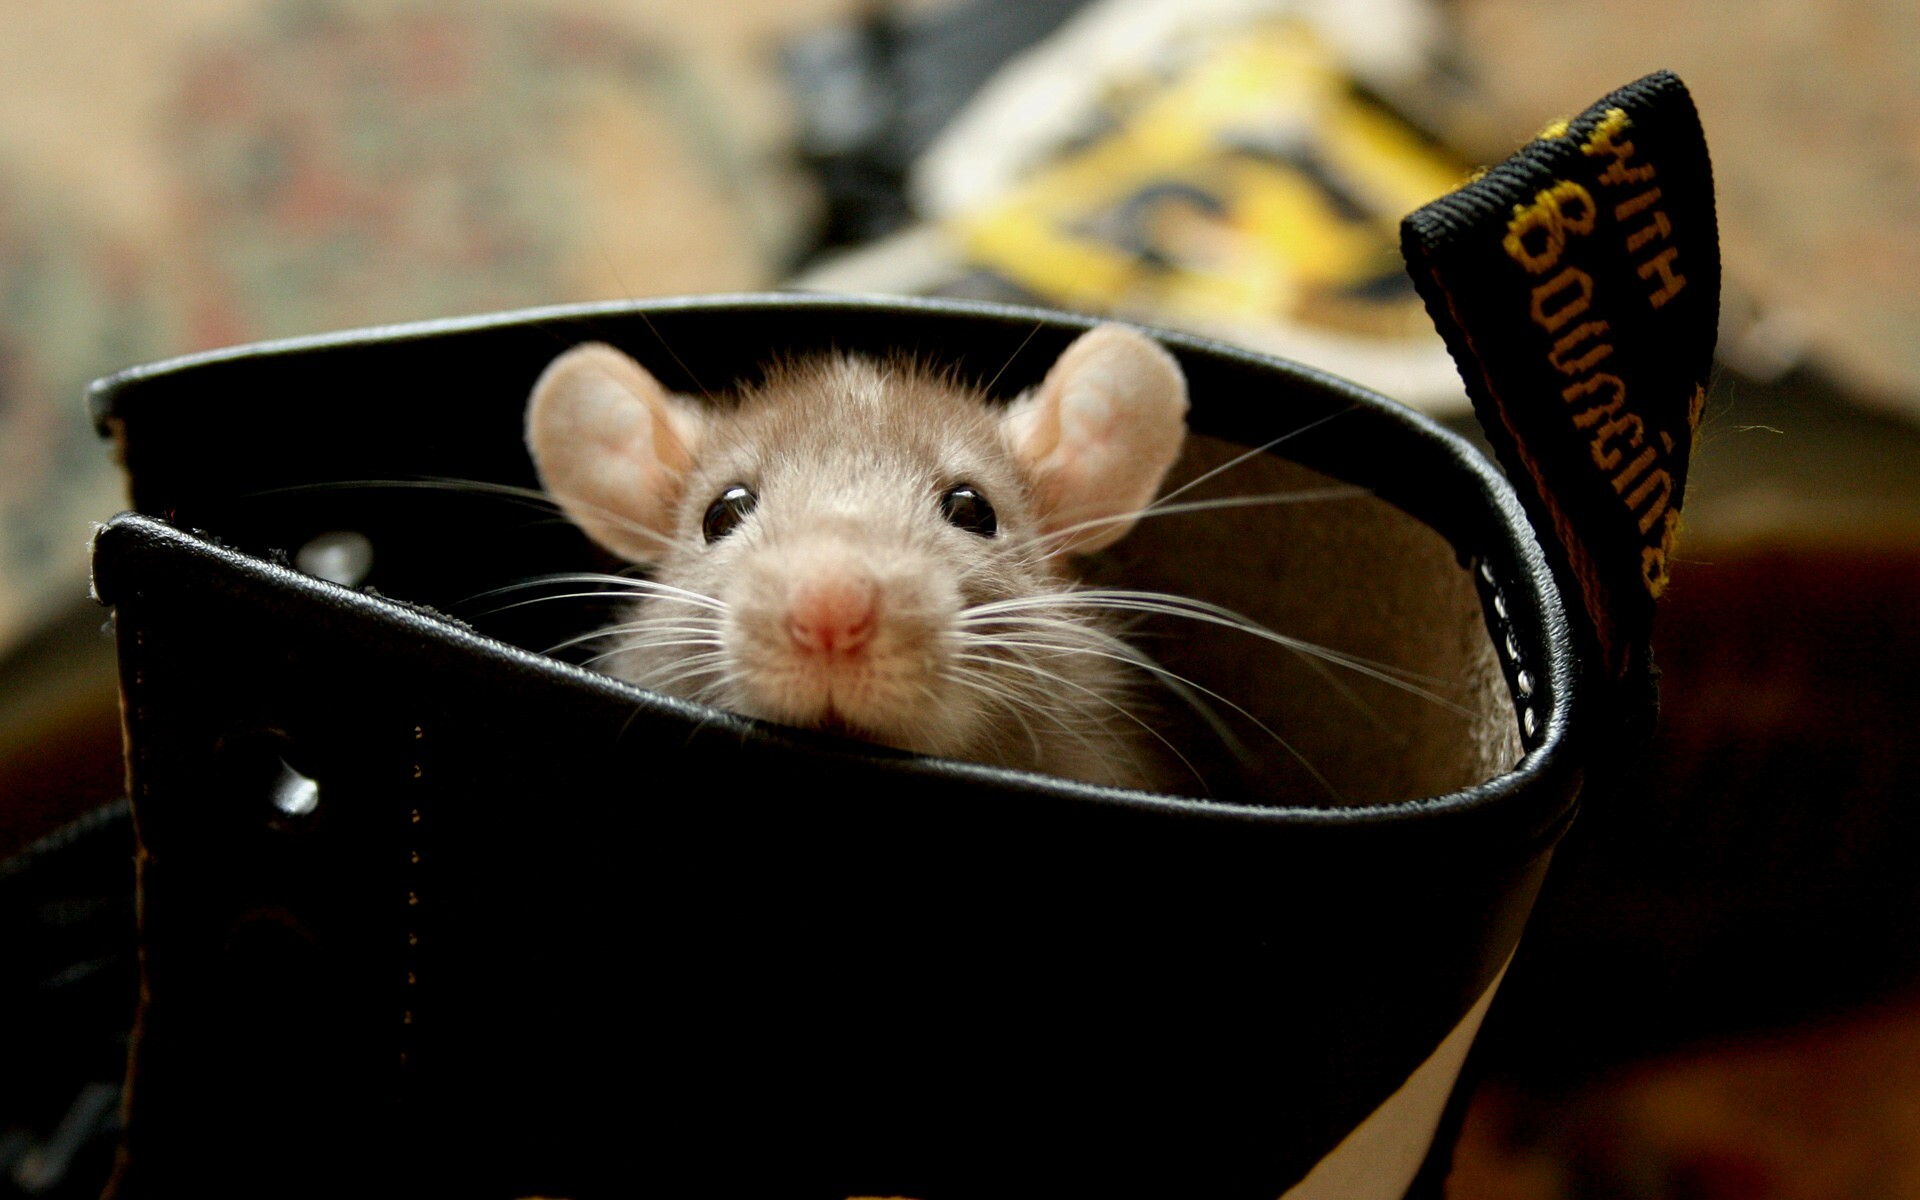 Beautiful Cute Mouse In Shoes Wallpaper Free Download